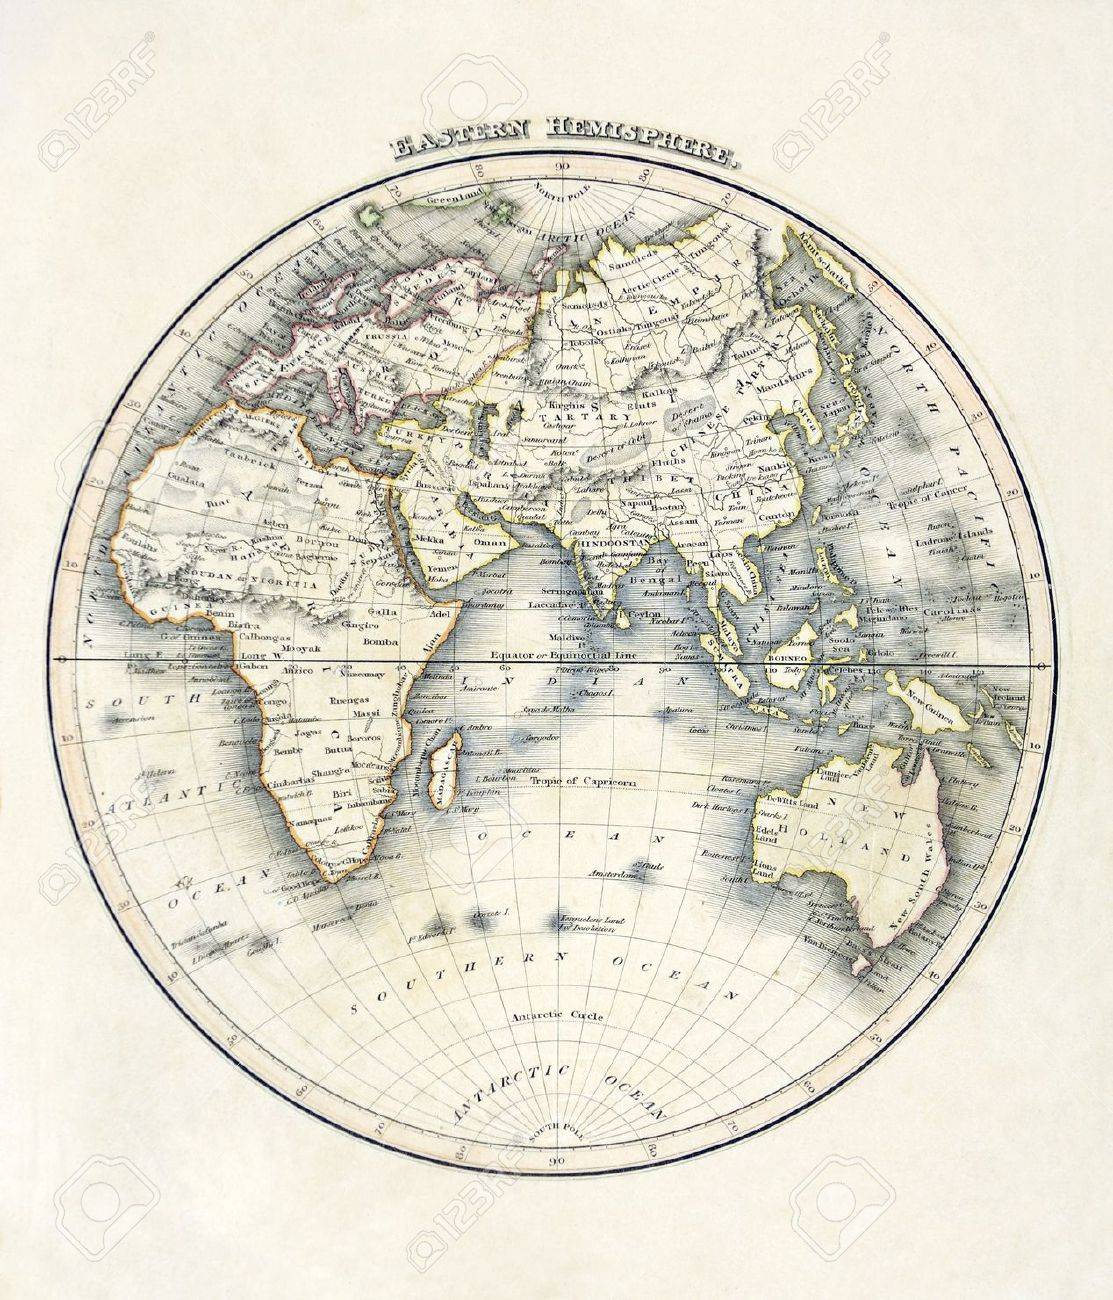 Map Of Asia Australia.Map Of The World Showing Africa Asia Australia South Pole